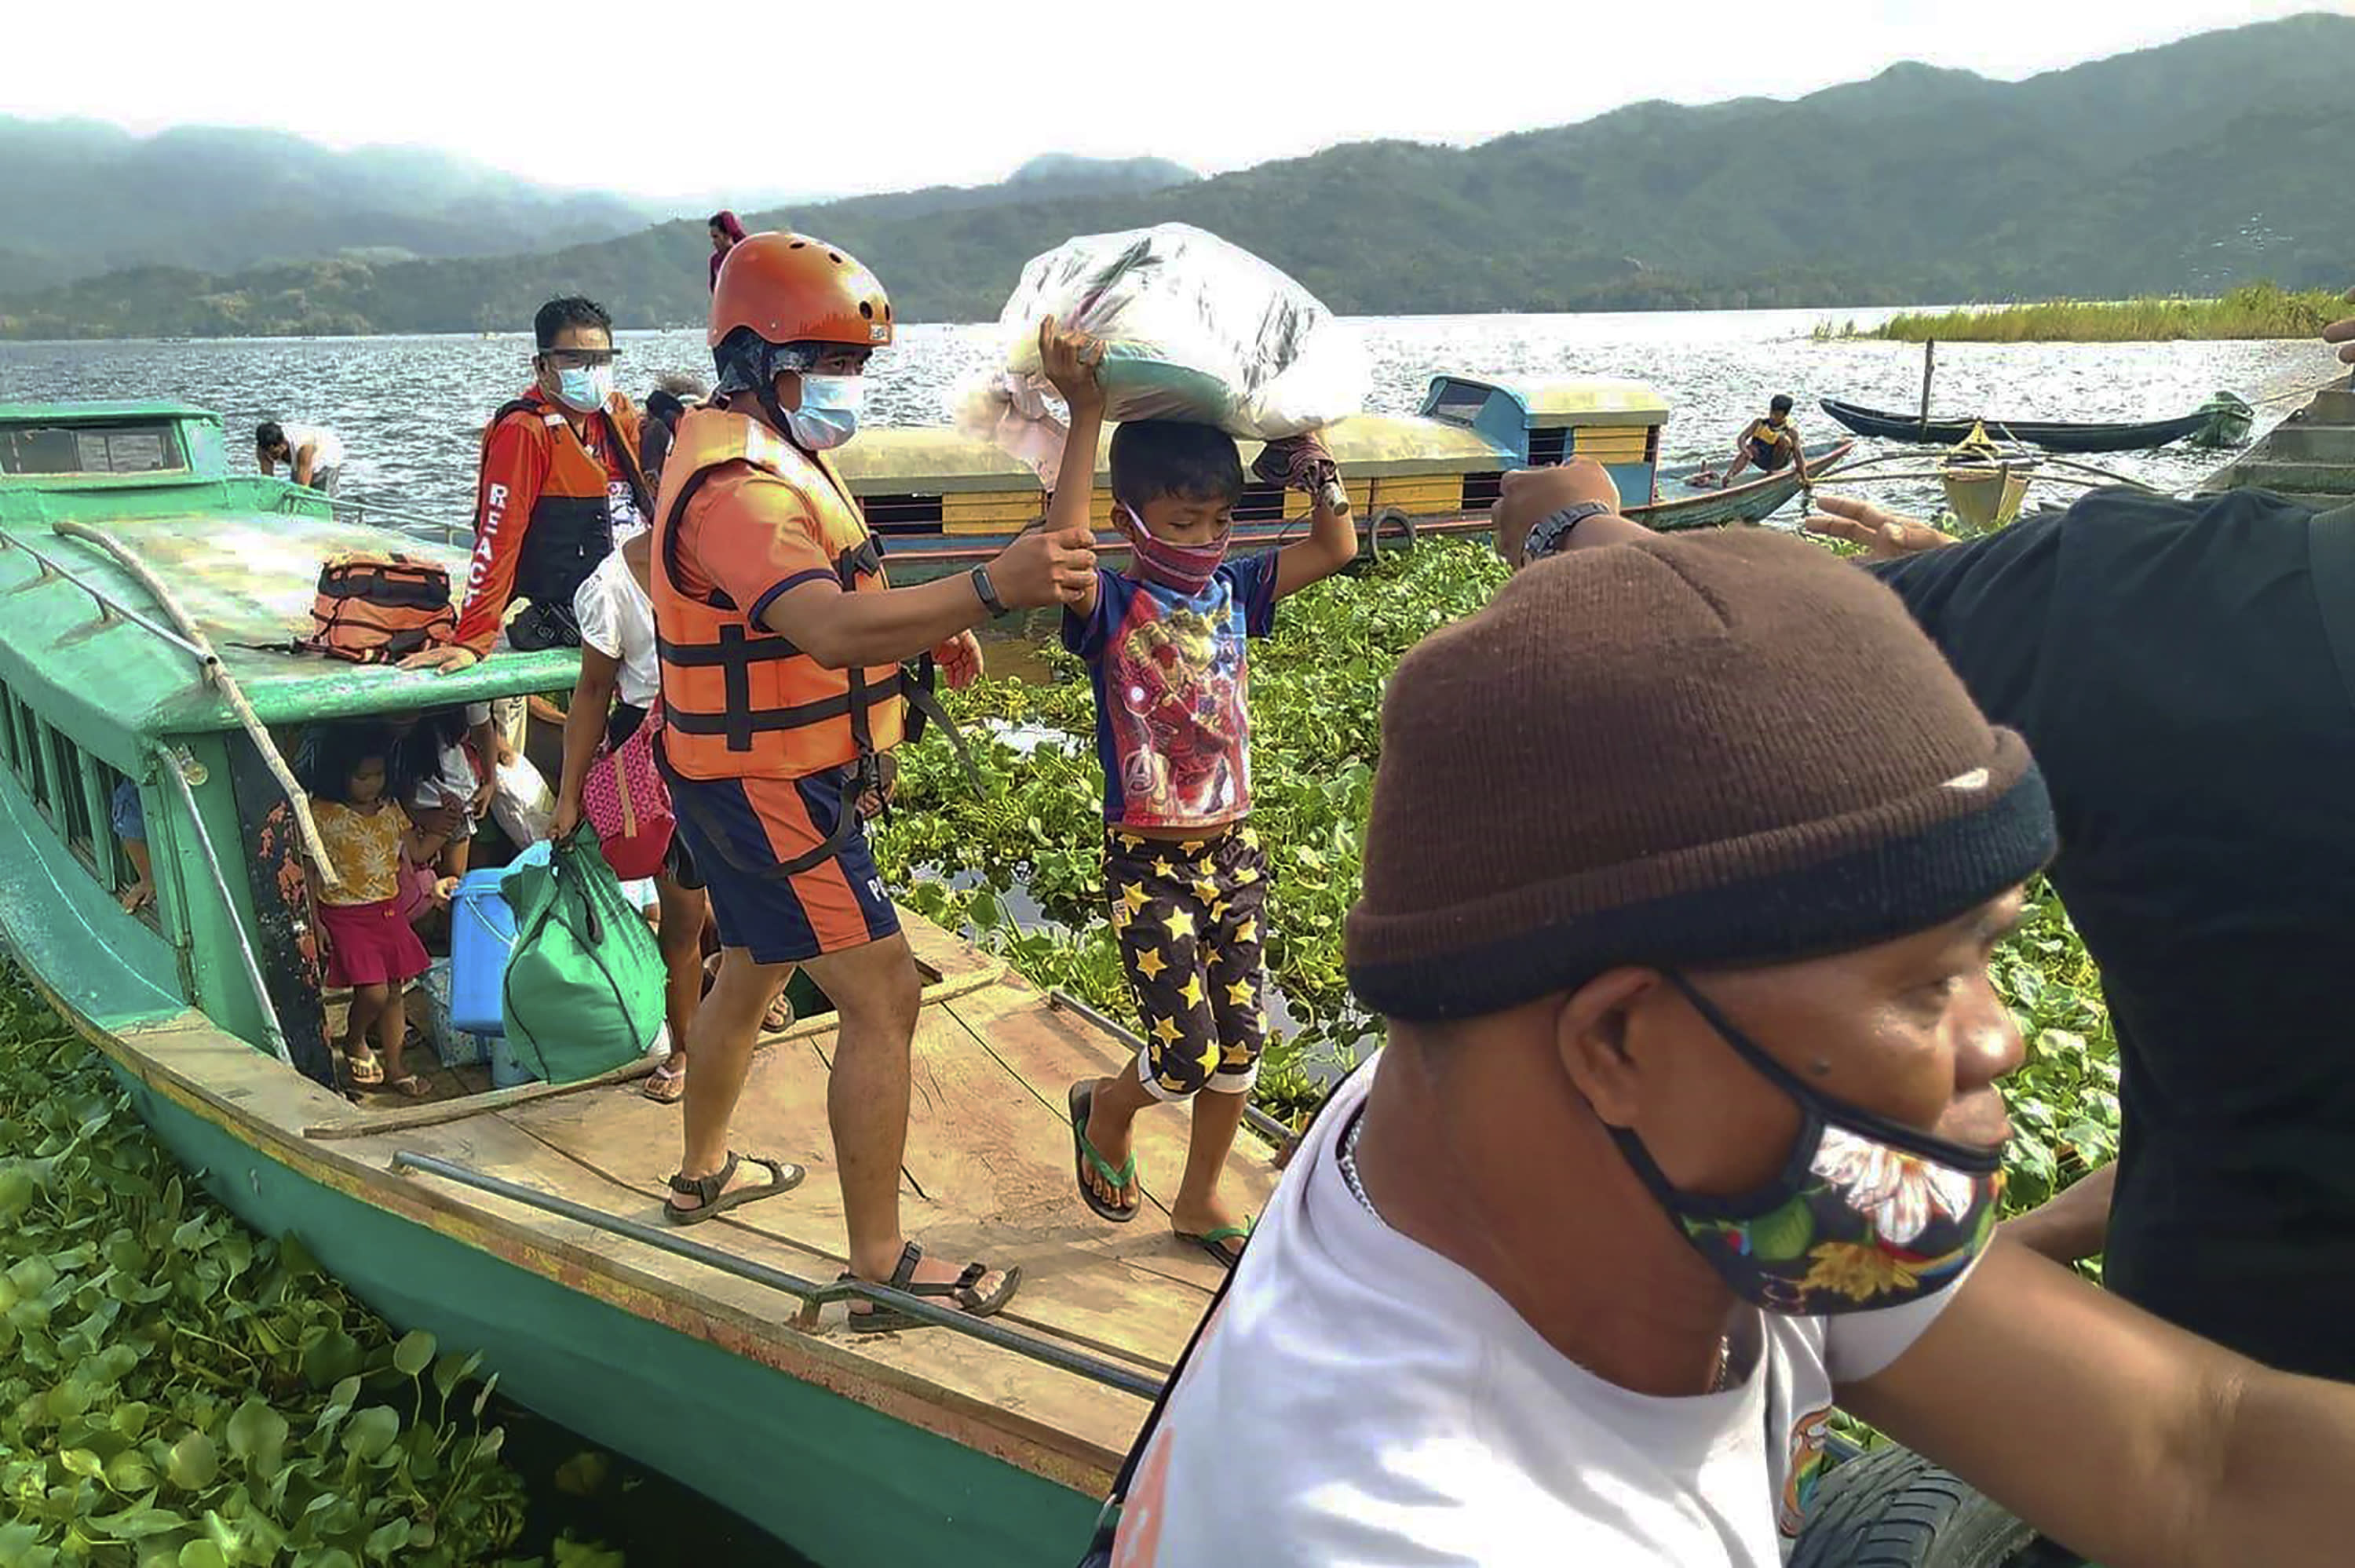 In this photo provided by the Philippine Coast Guard, families are evacuated to safer ground in Camarines Sur province, eastern Philippines on Saturday Oct. 31, 2020 as they prepare for typhoon Goni. Families living near coastal towns have started moving to evacuation centers as the strong typhoon approaches the country. (Philippine Coast Guard via AP)